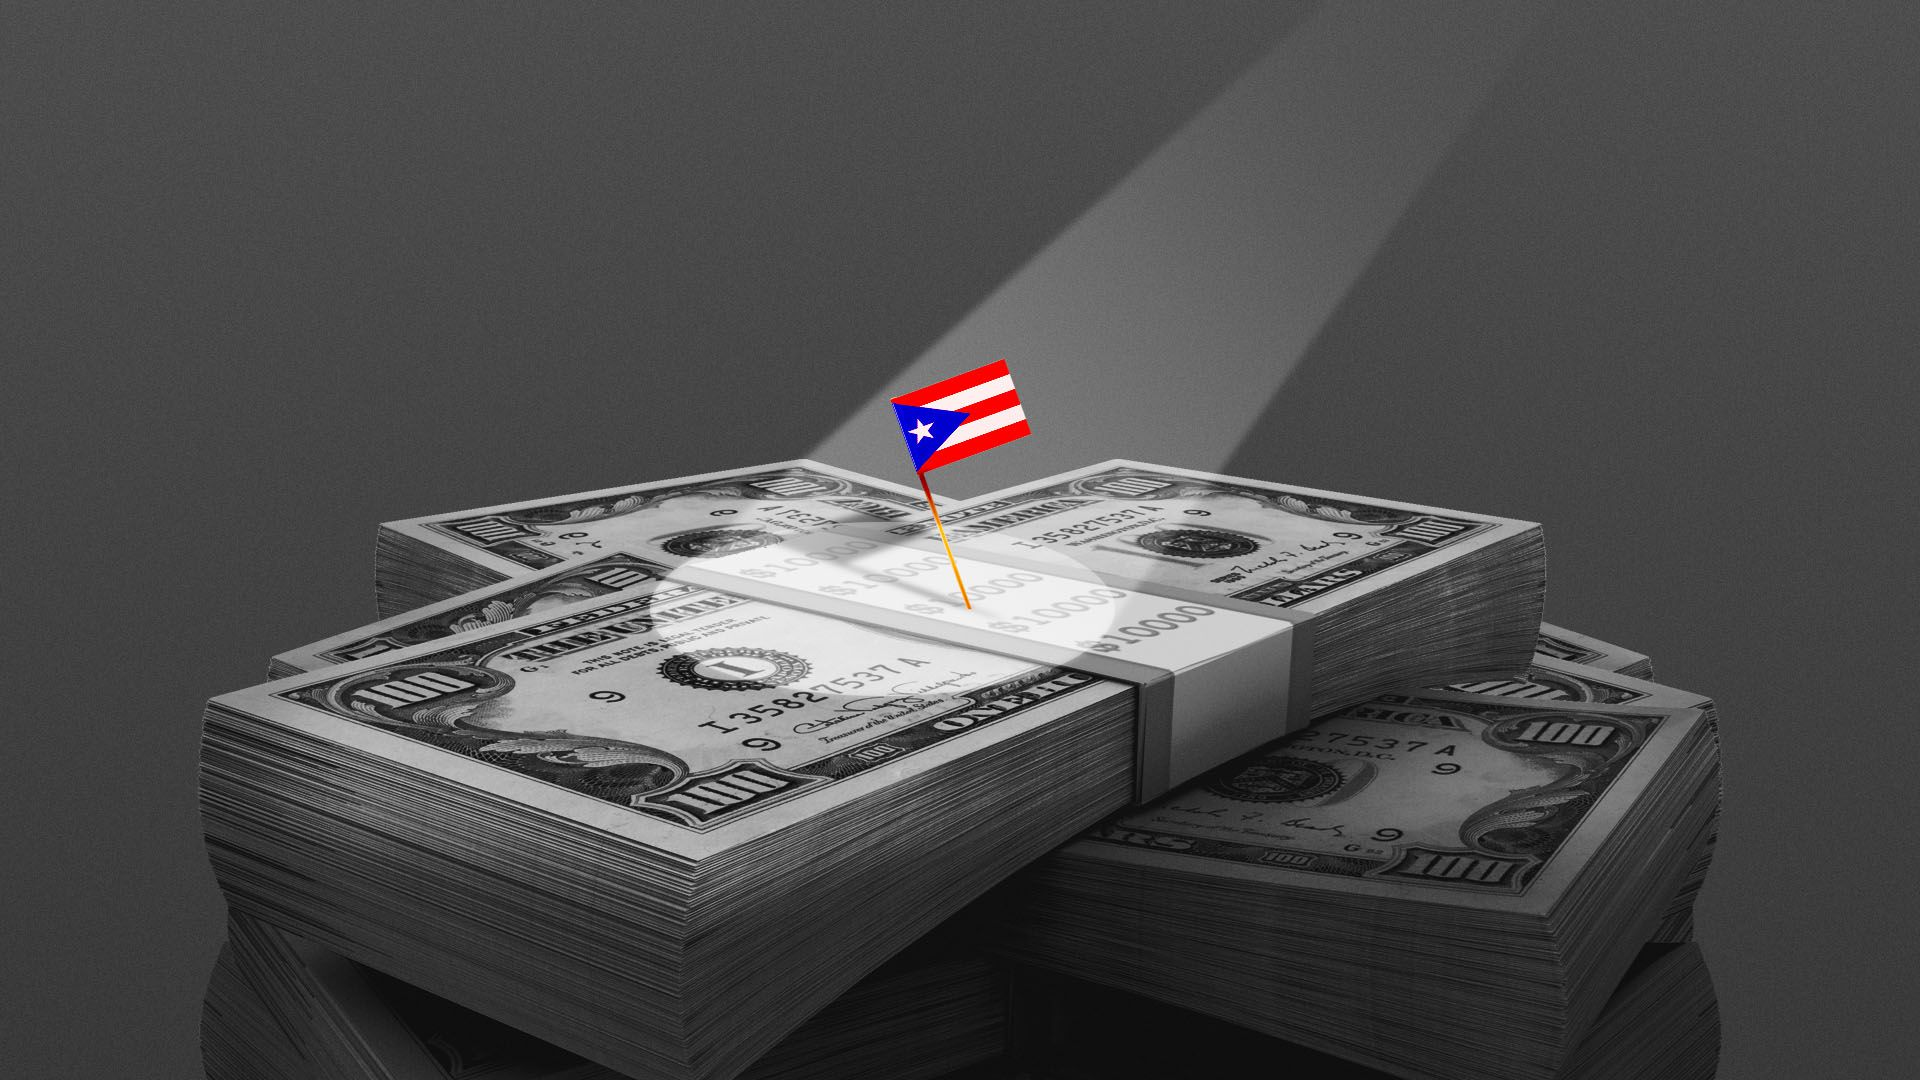 Illustration of a spotlight on a tiny Puerto Rican flag on top of a stack of money